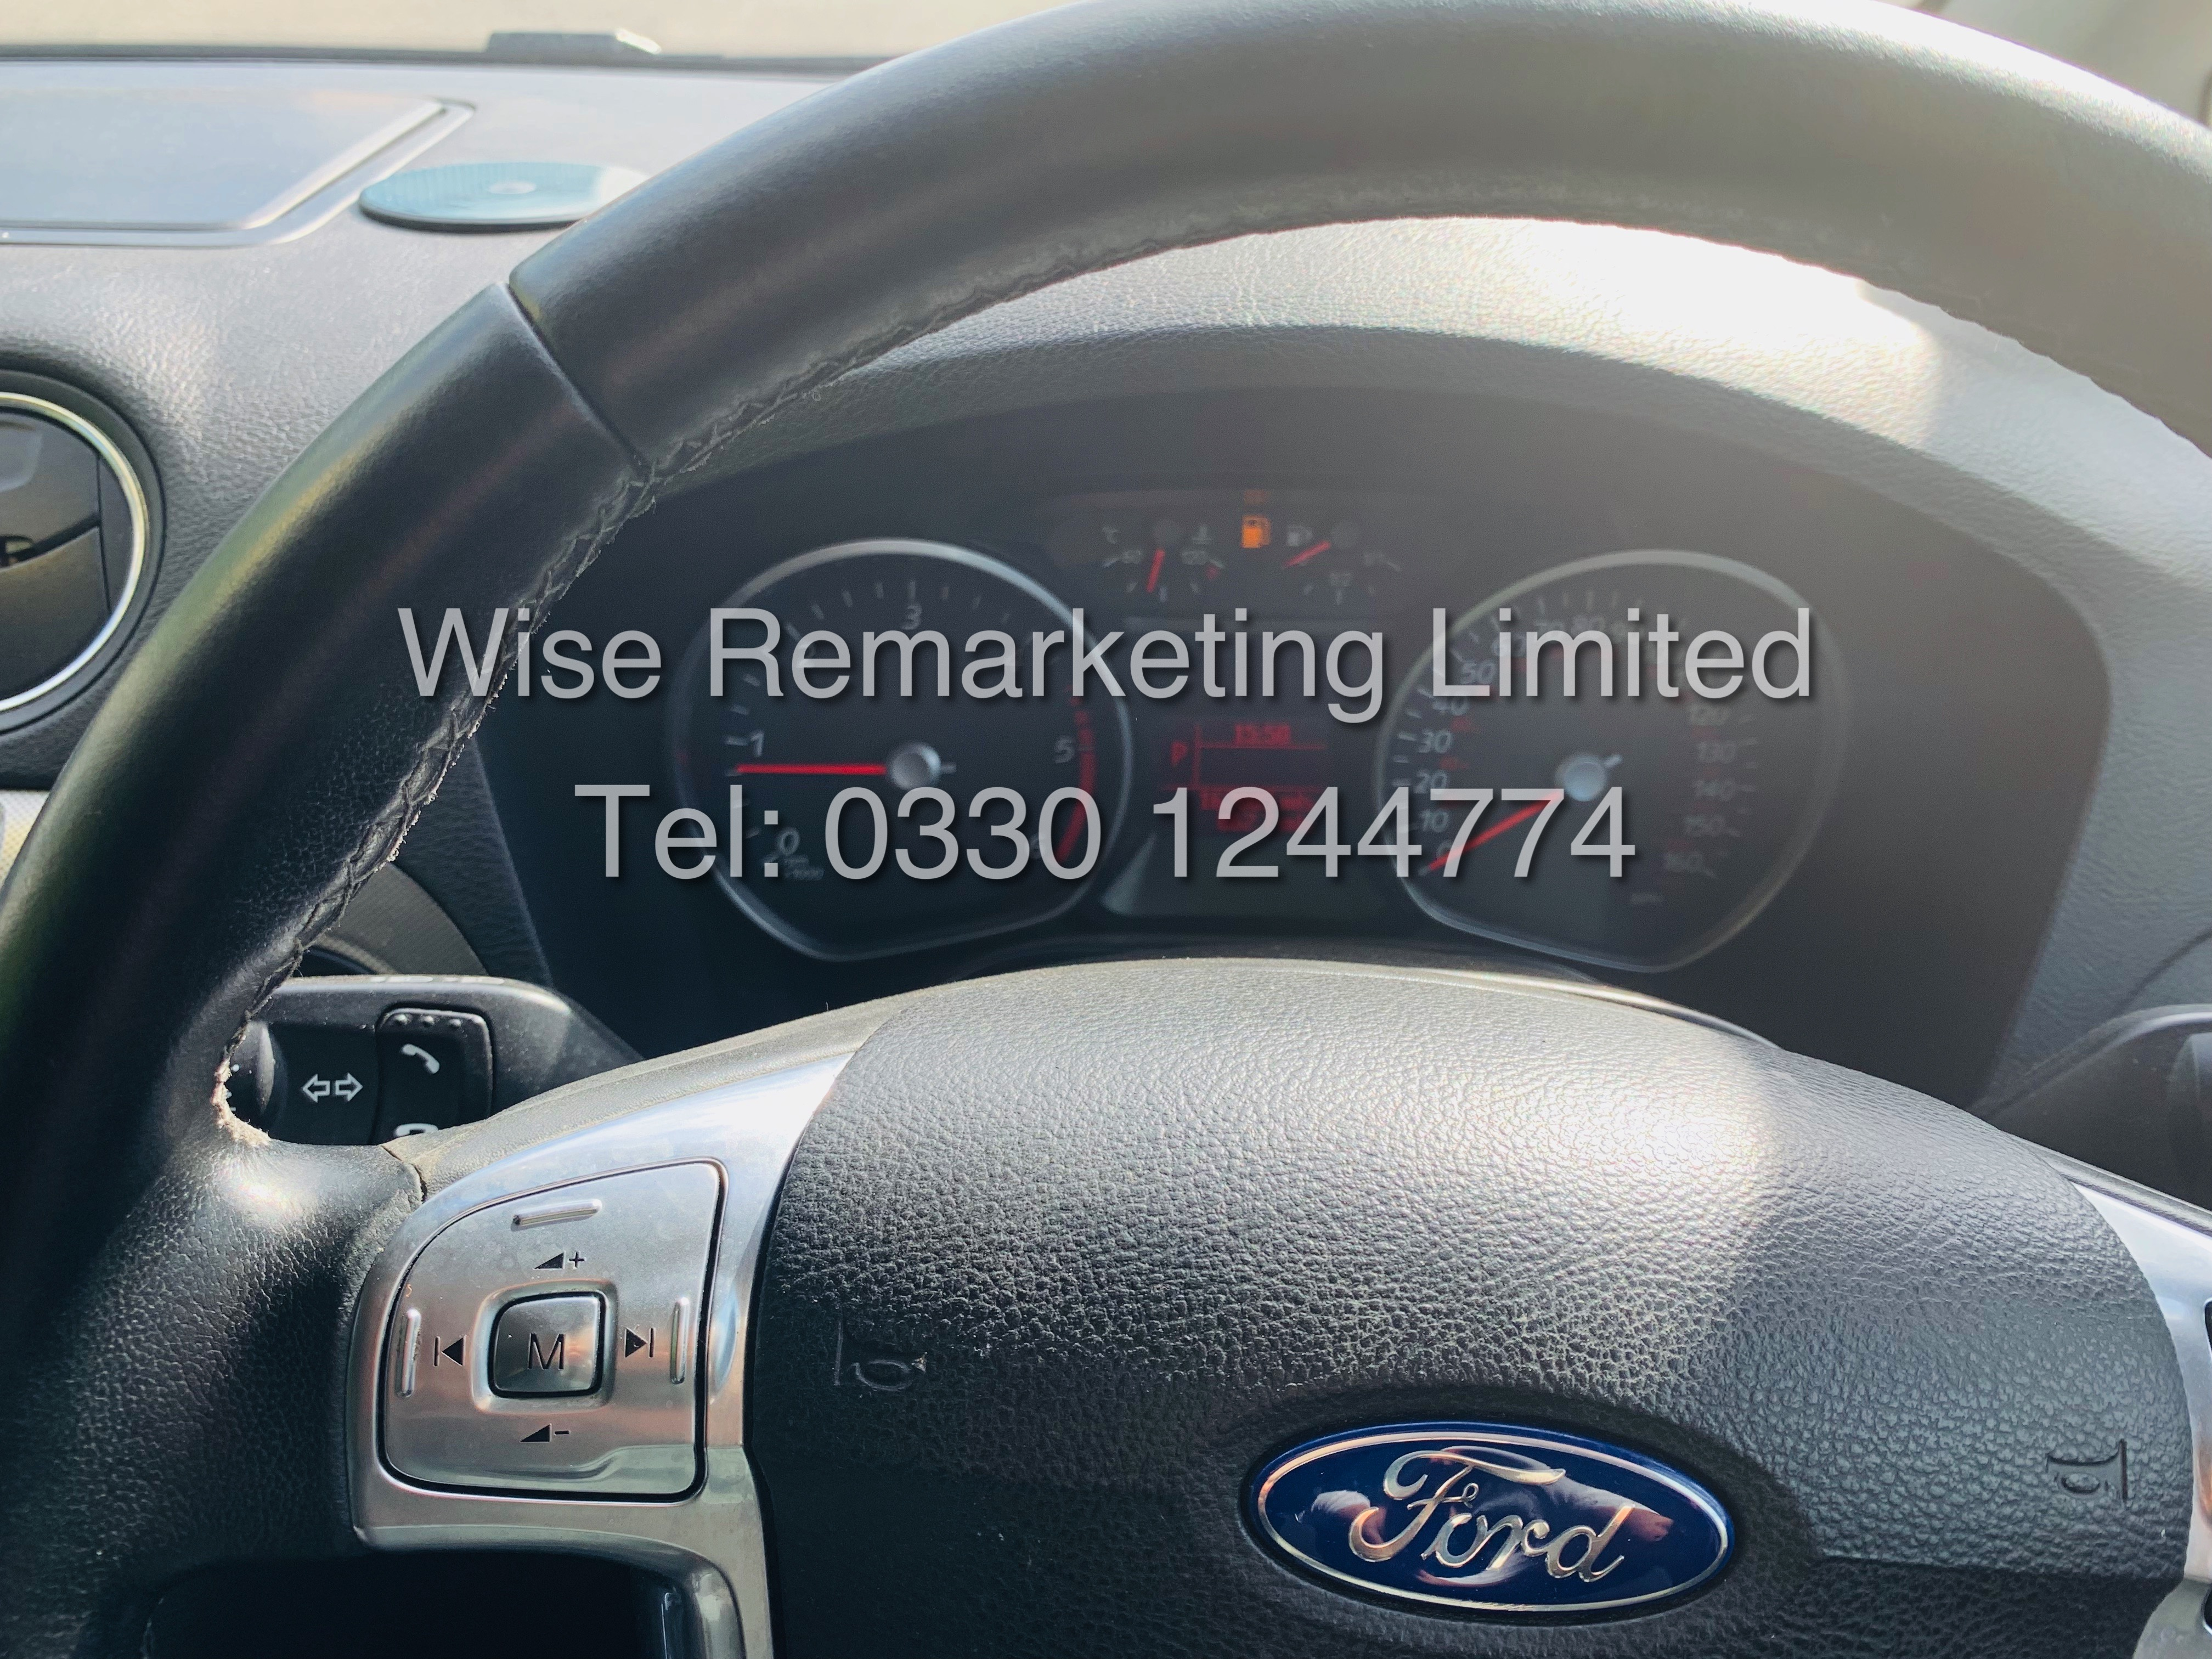 FORD GALAXY ZETEC 2.0L TDCI AUTO 7 SEATER MPV 63 REG *1 OWNER* - Image 17 of 18